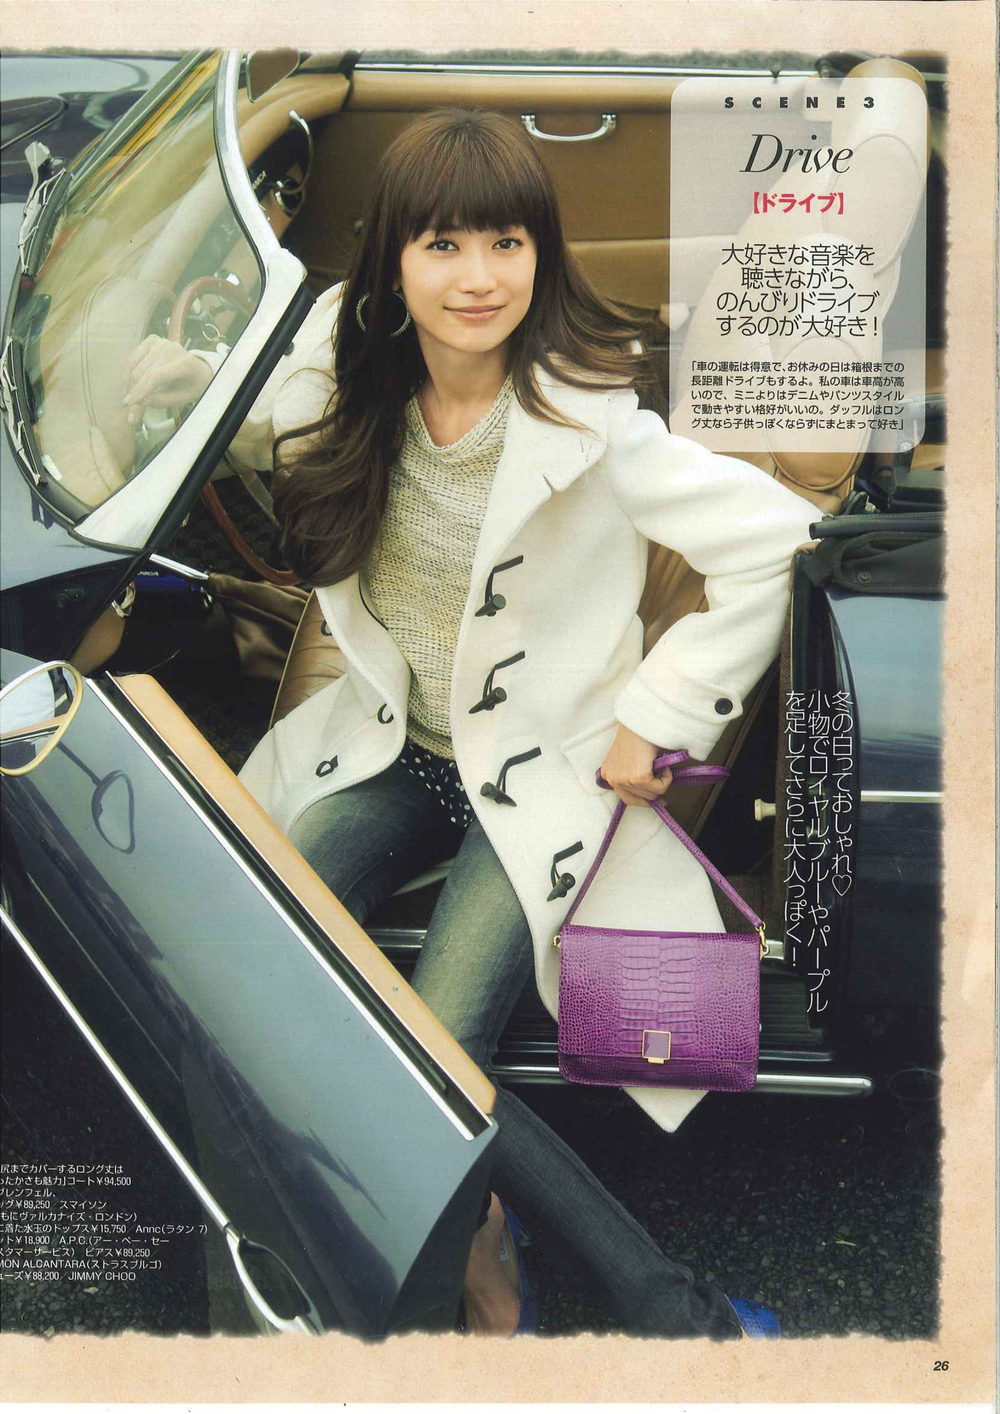 Japanese Magazine- March Issue